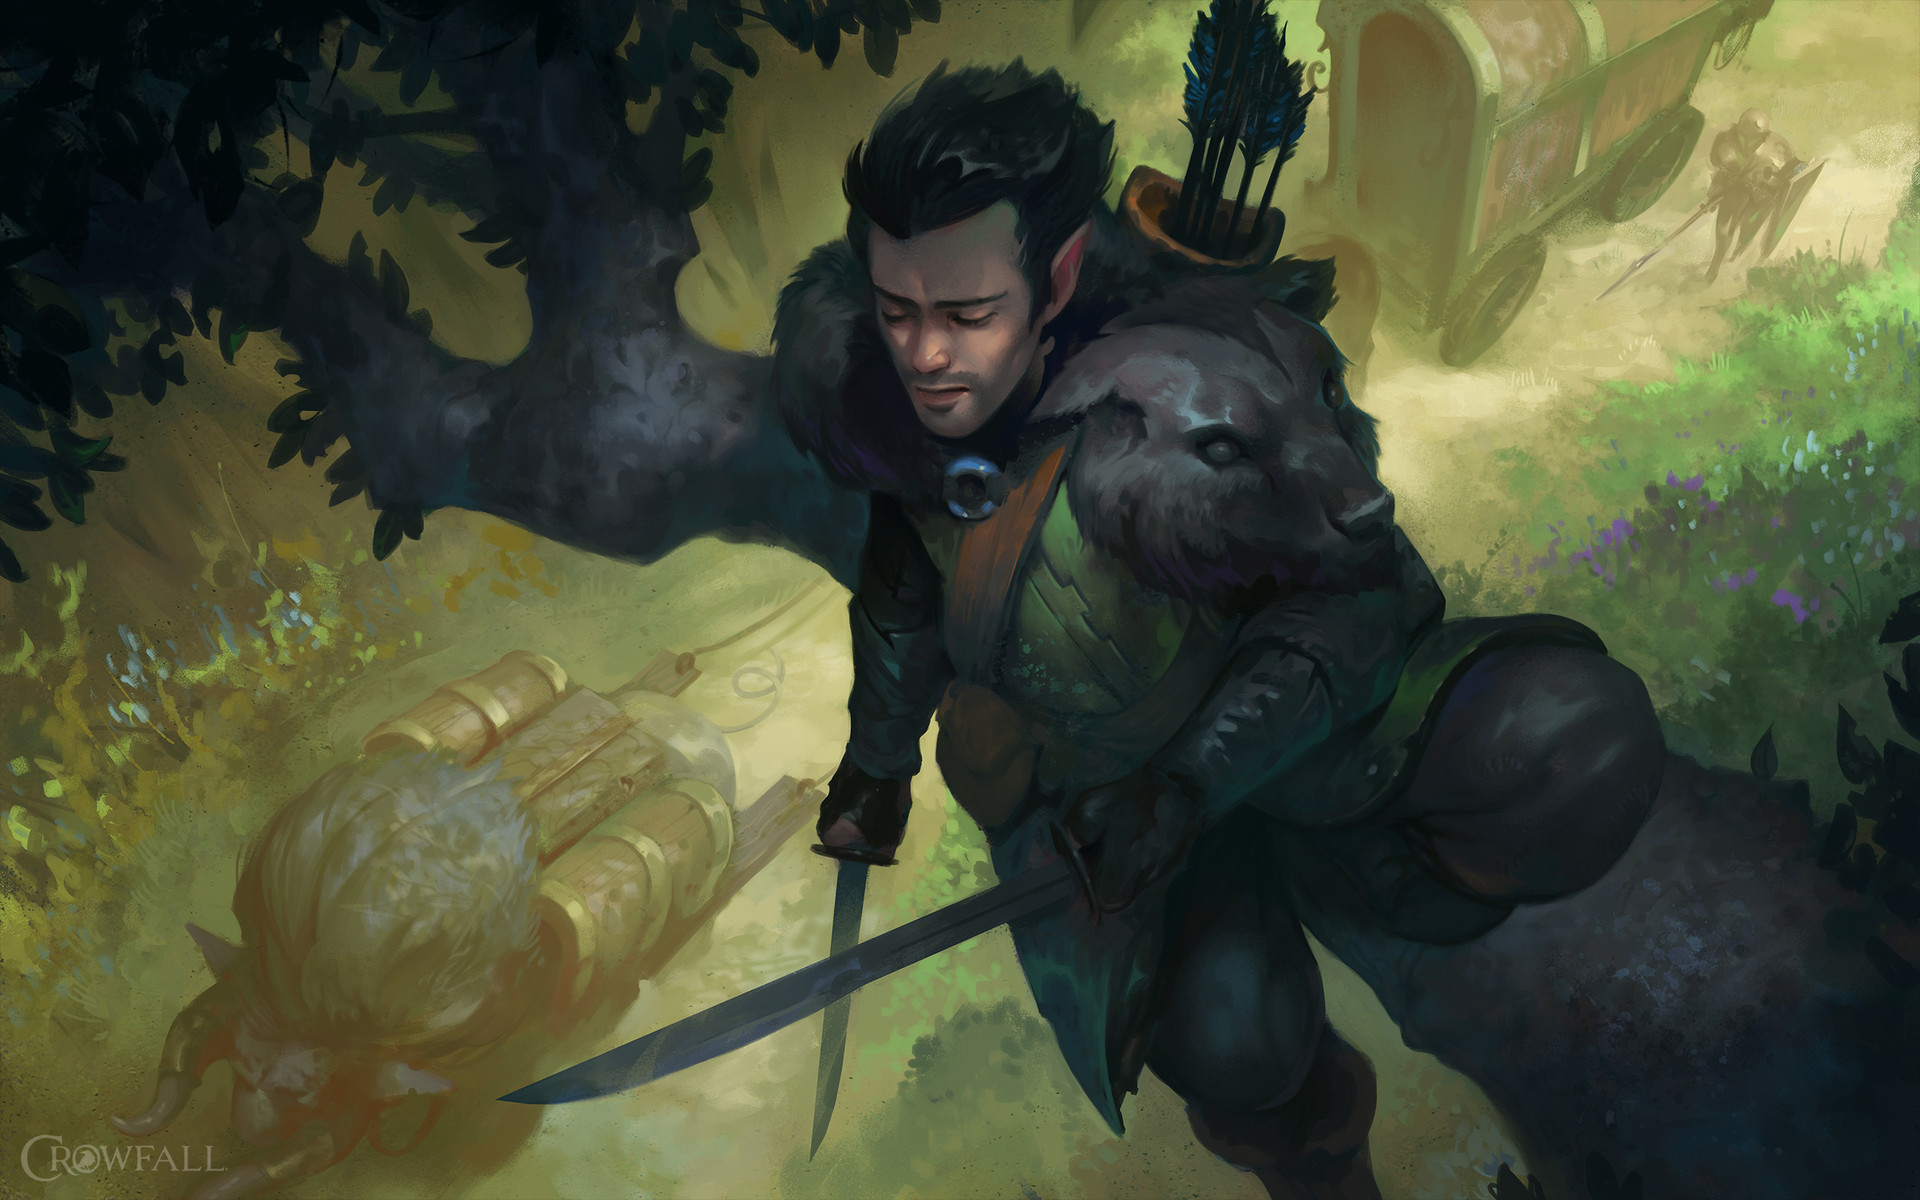 Dave Greco Digital Painting Crowfall Up Above Hunter